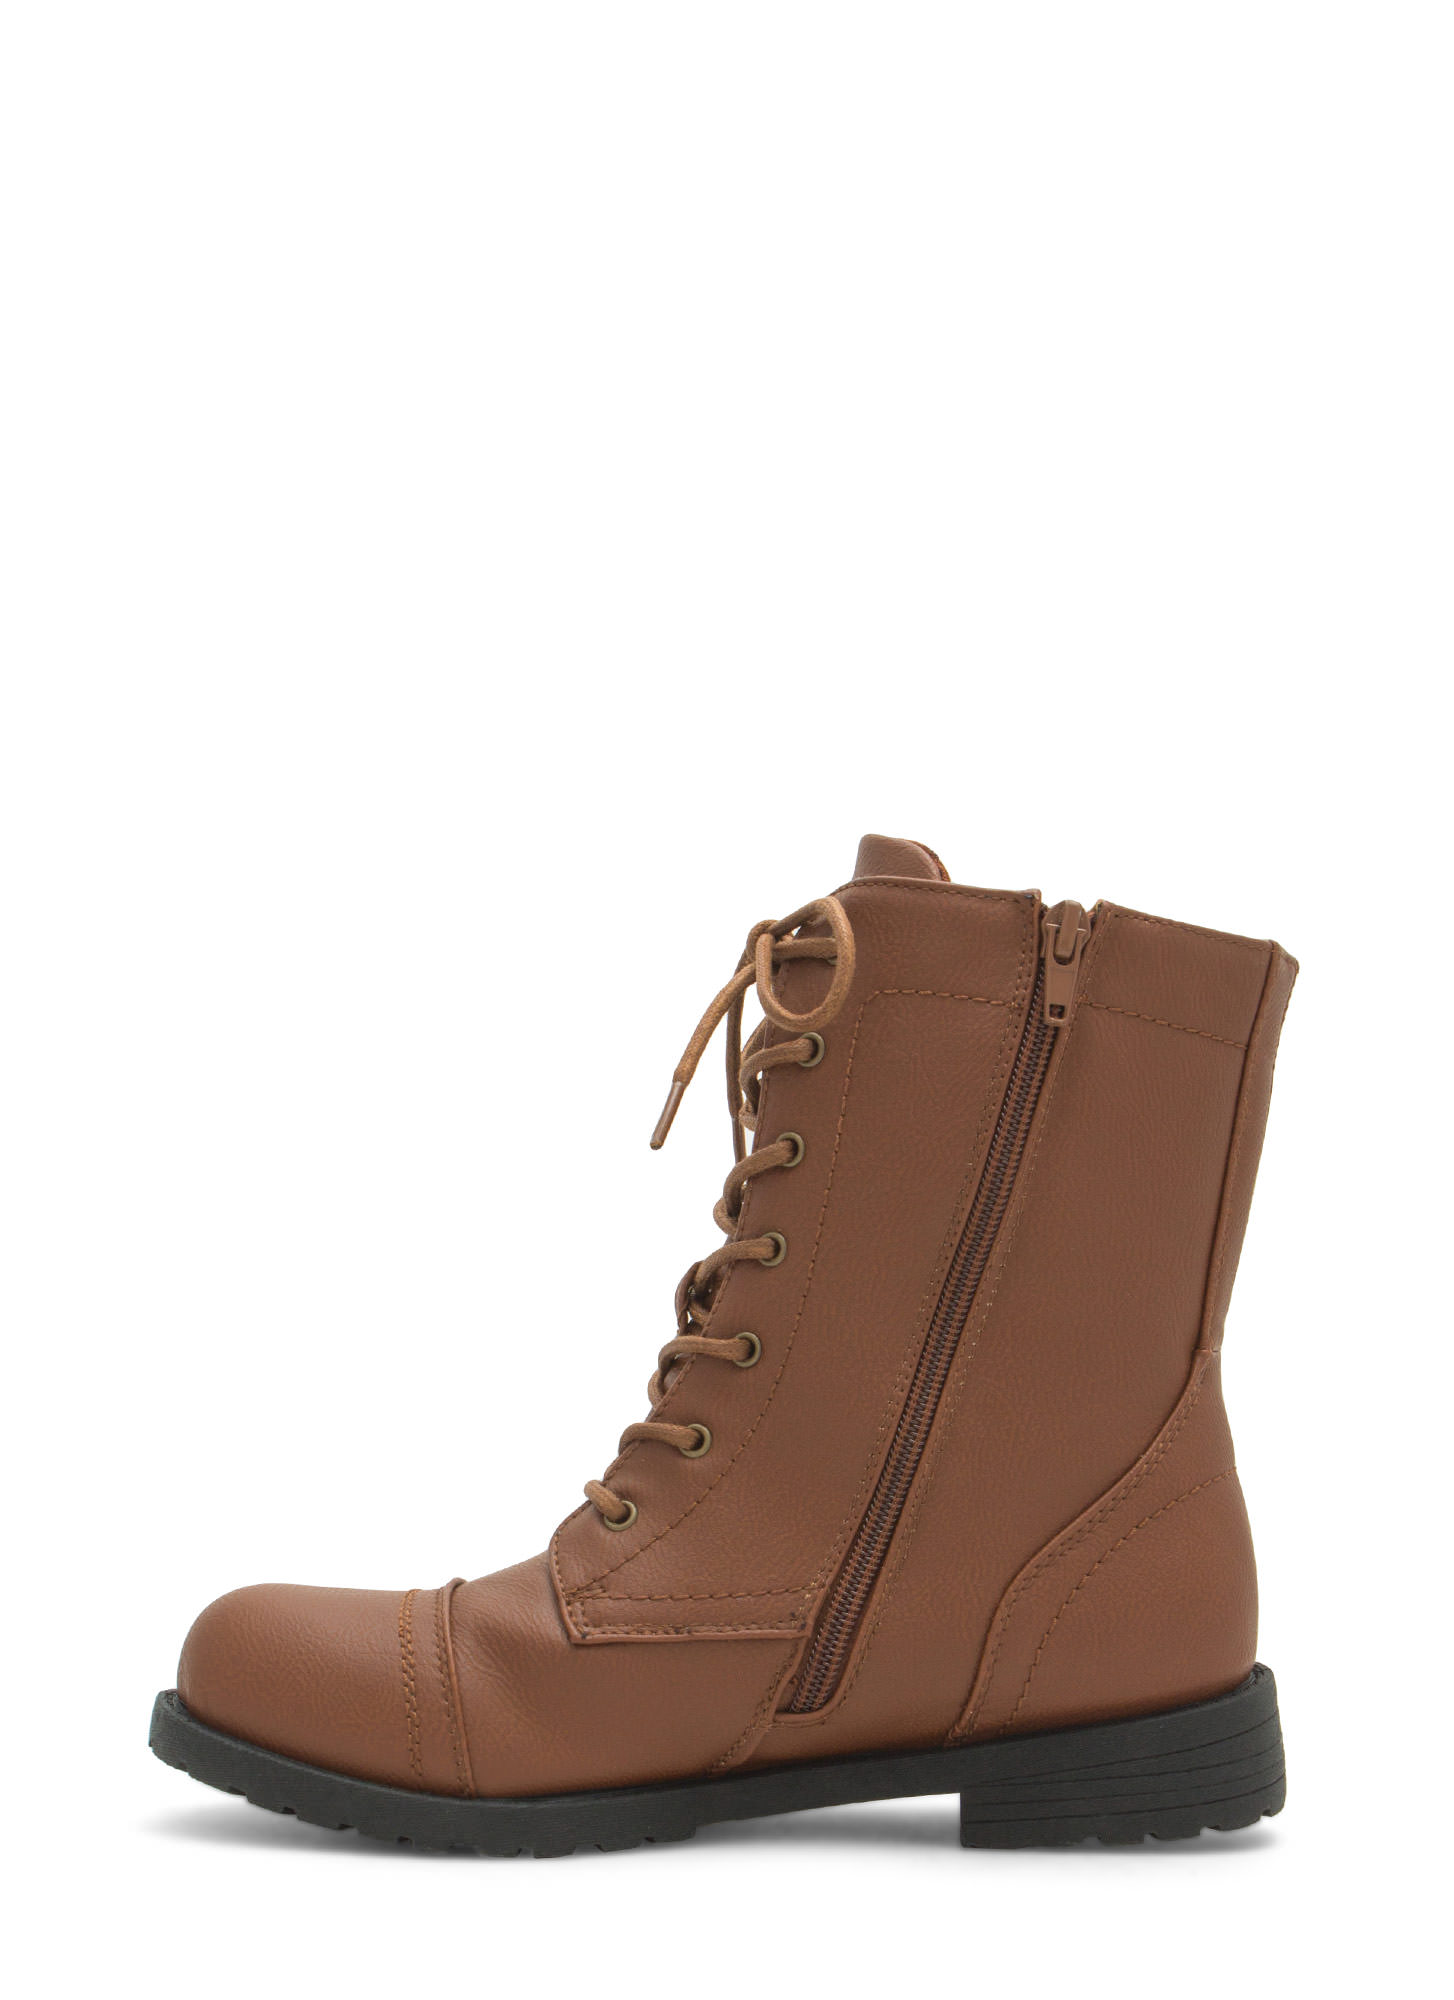 Plain Janes Lace Up Boots WHISKY (Final Sale)